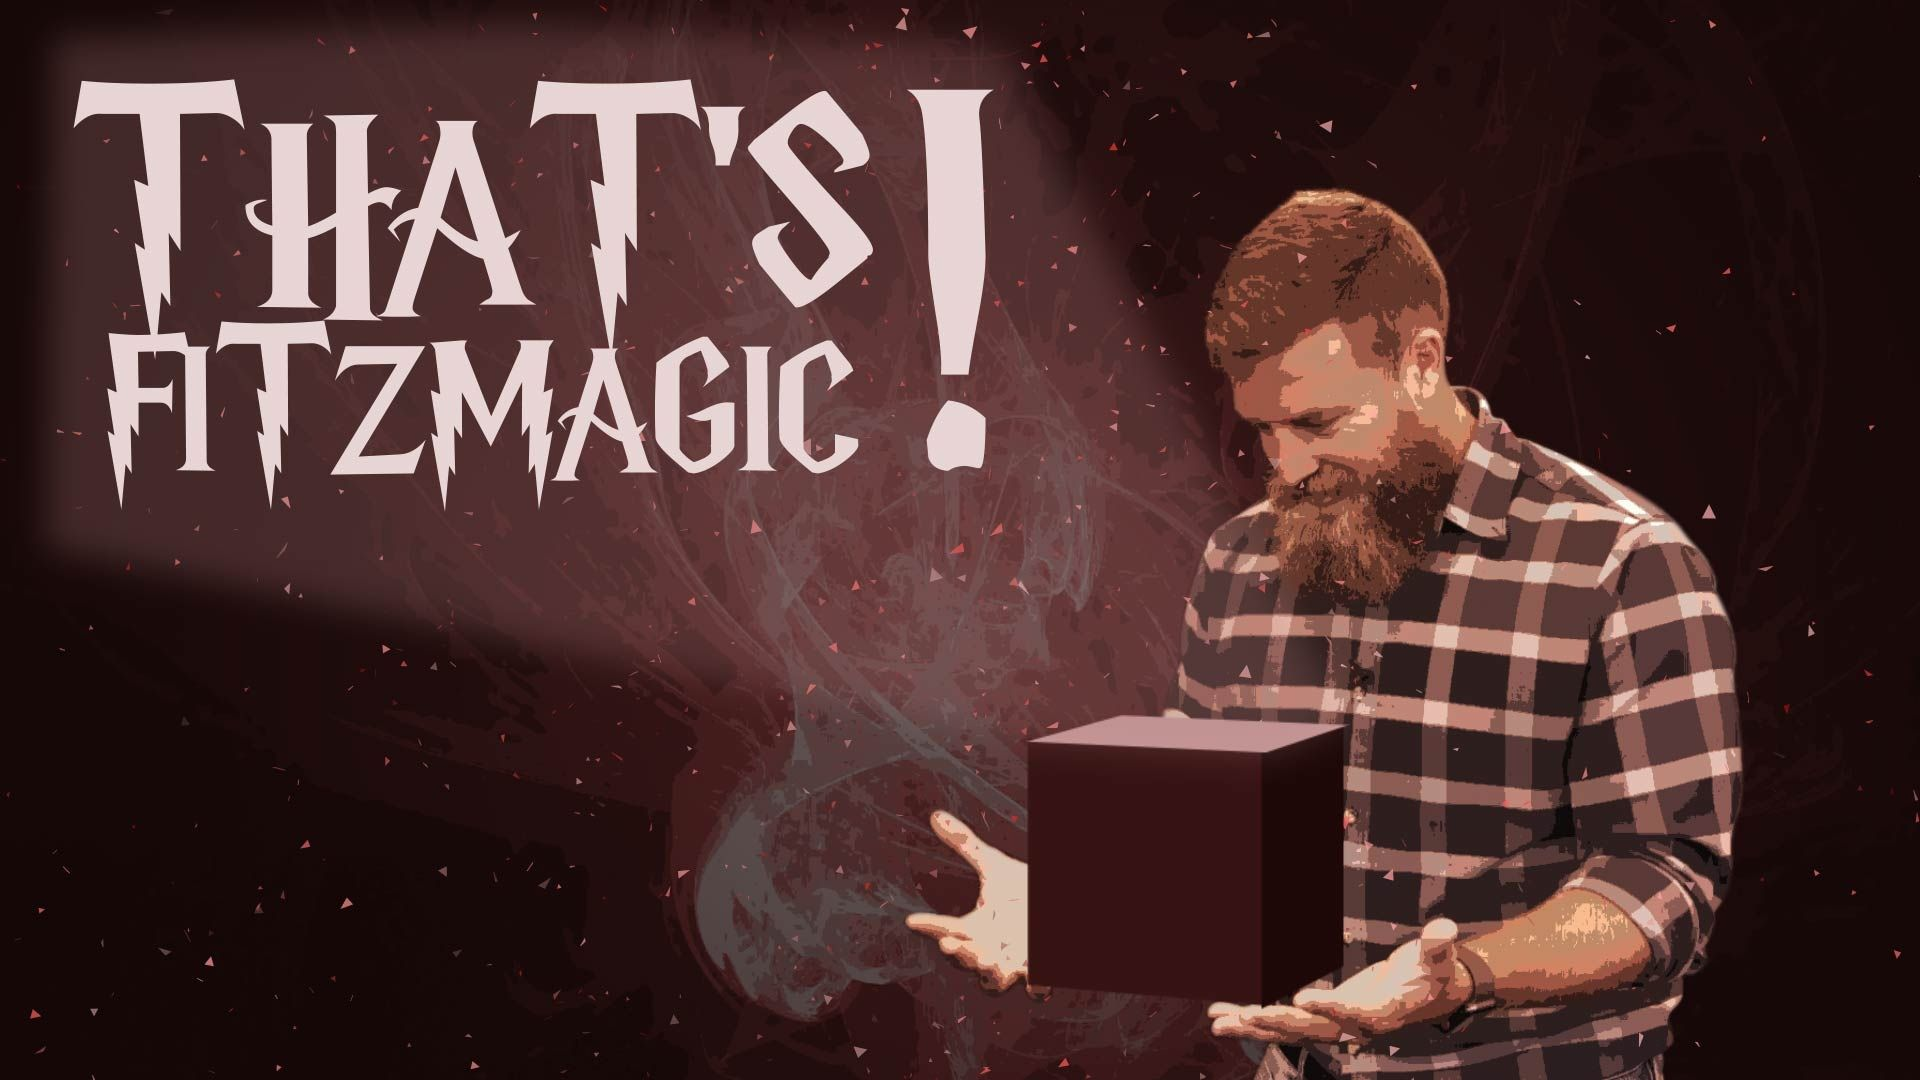 Fitzpatrick tries magic!